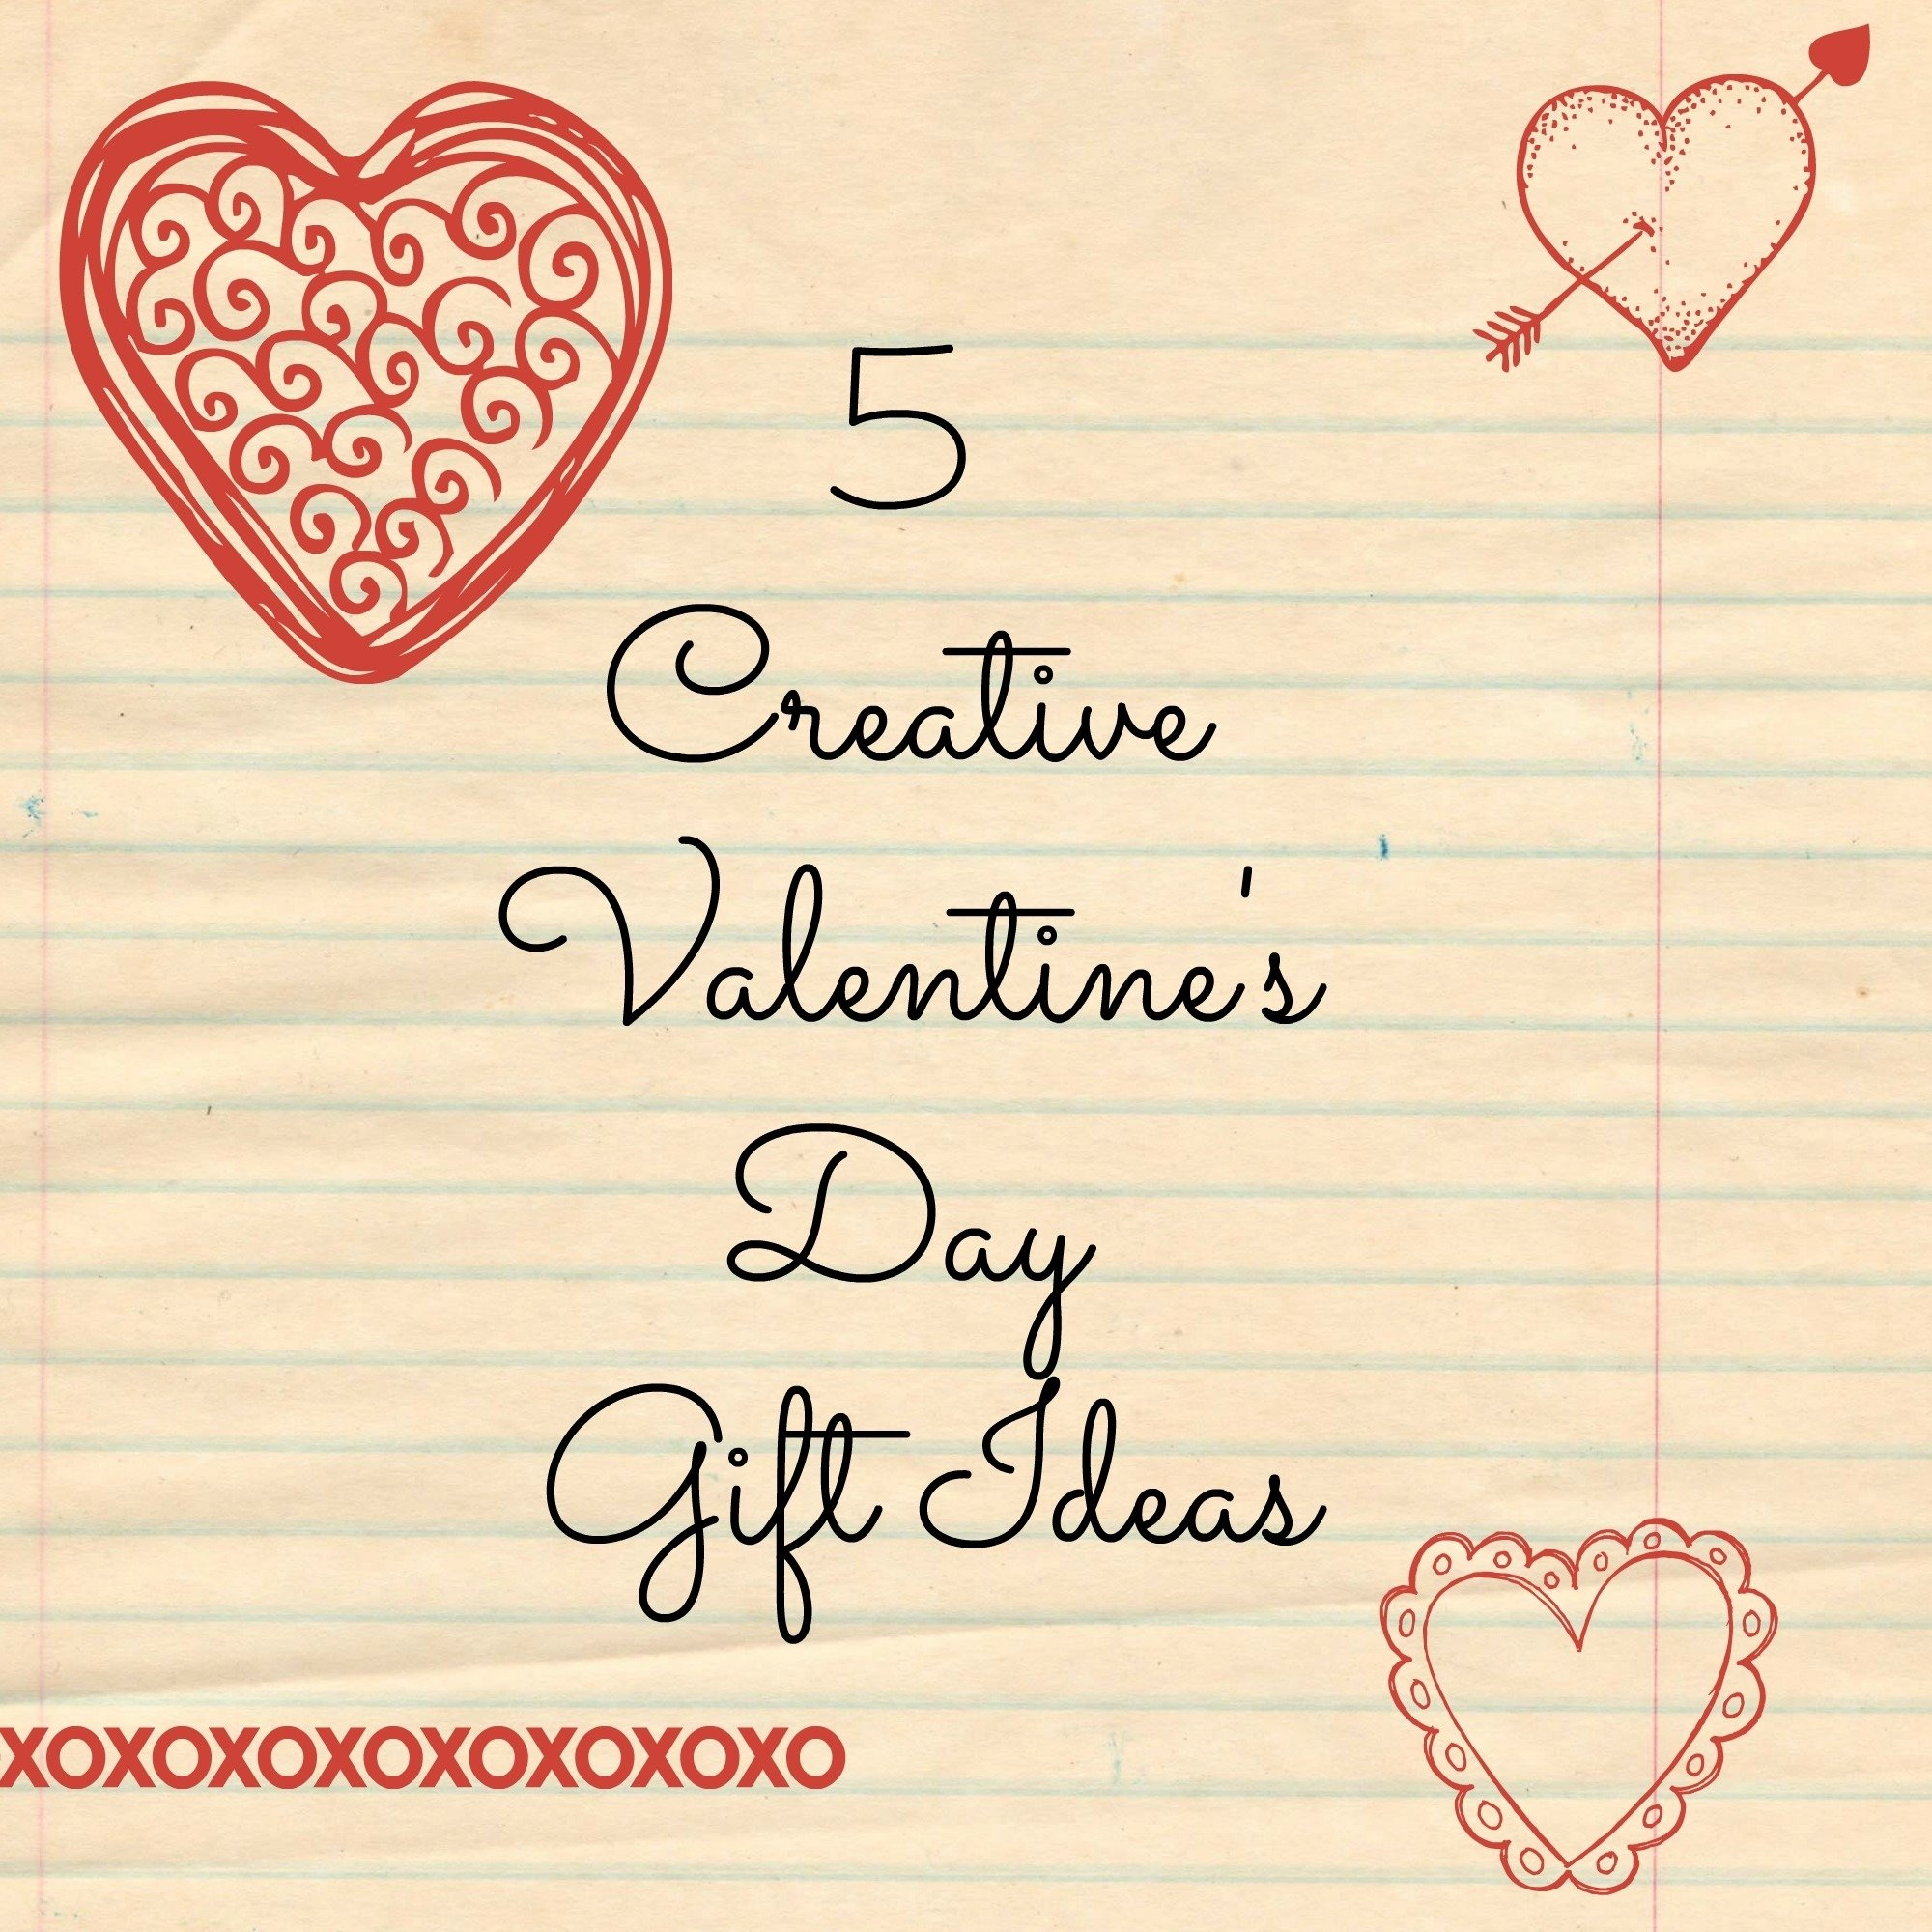 10 Most Recommended Valentines Gifts For Husband Ideas